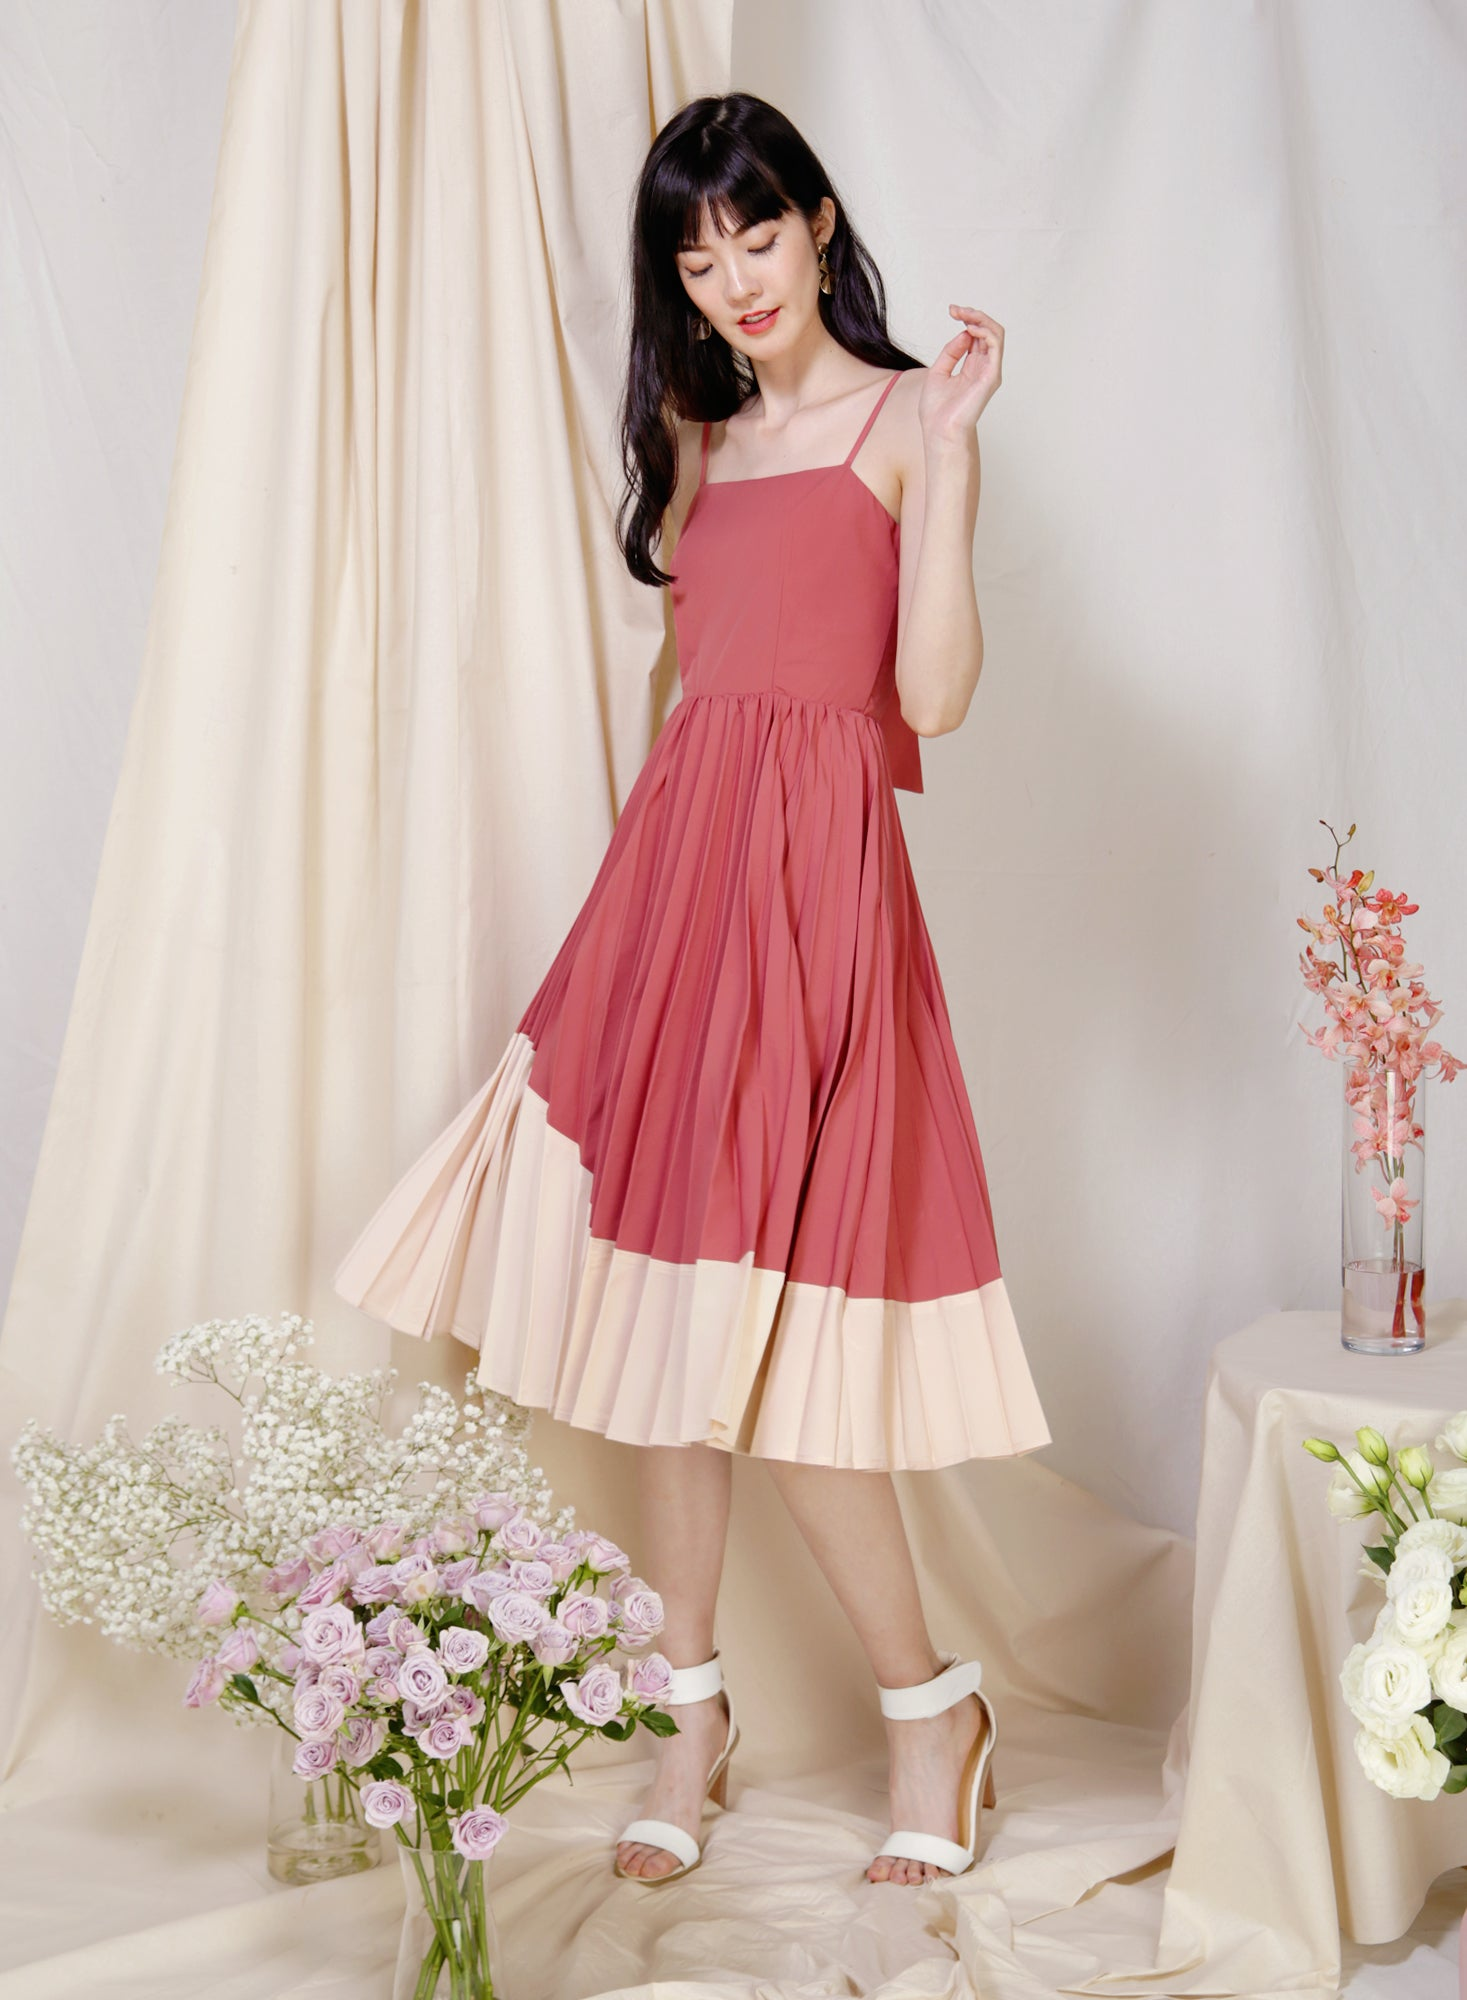 Eternity Tie Back Pleated Dress (Rose/Sand) at $ 33.50 only sold at And Well Dressed Online Fashion Store Singapore